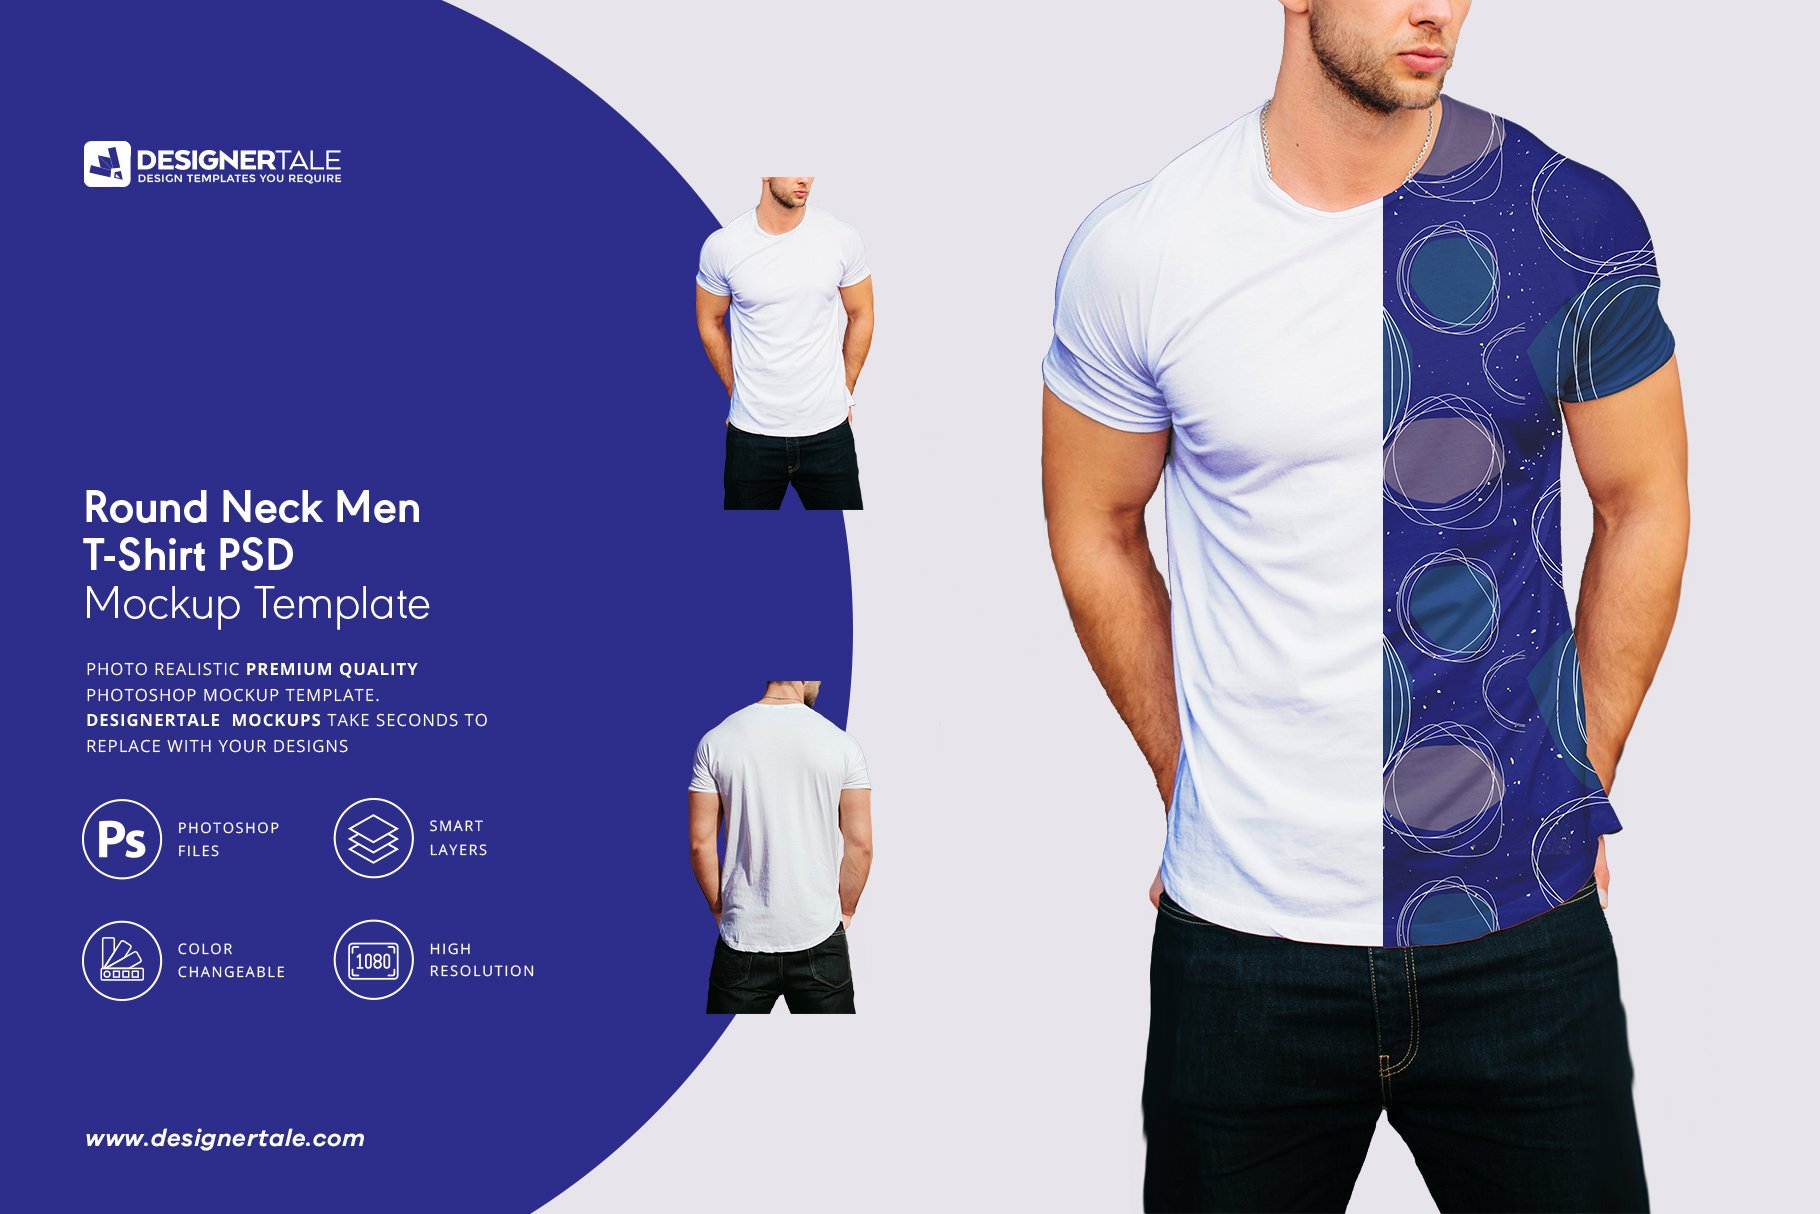 round neck men t shirt mockup psd template image preview 1